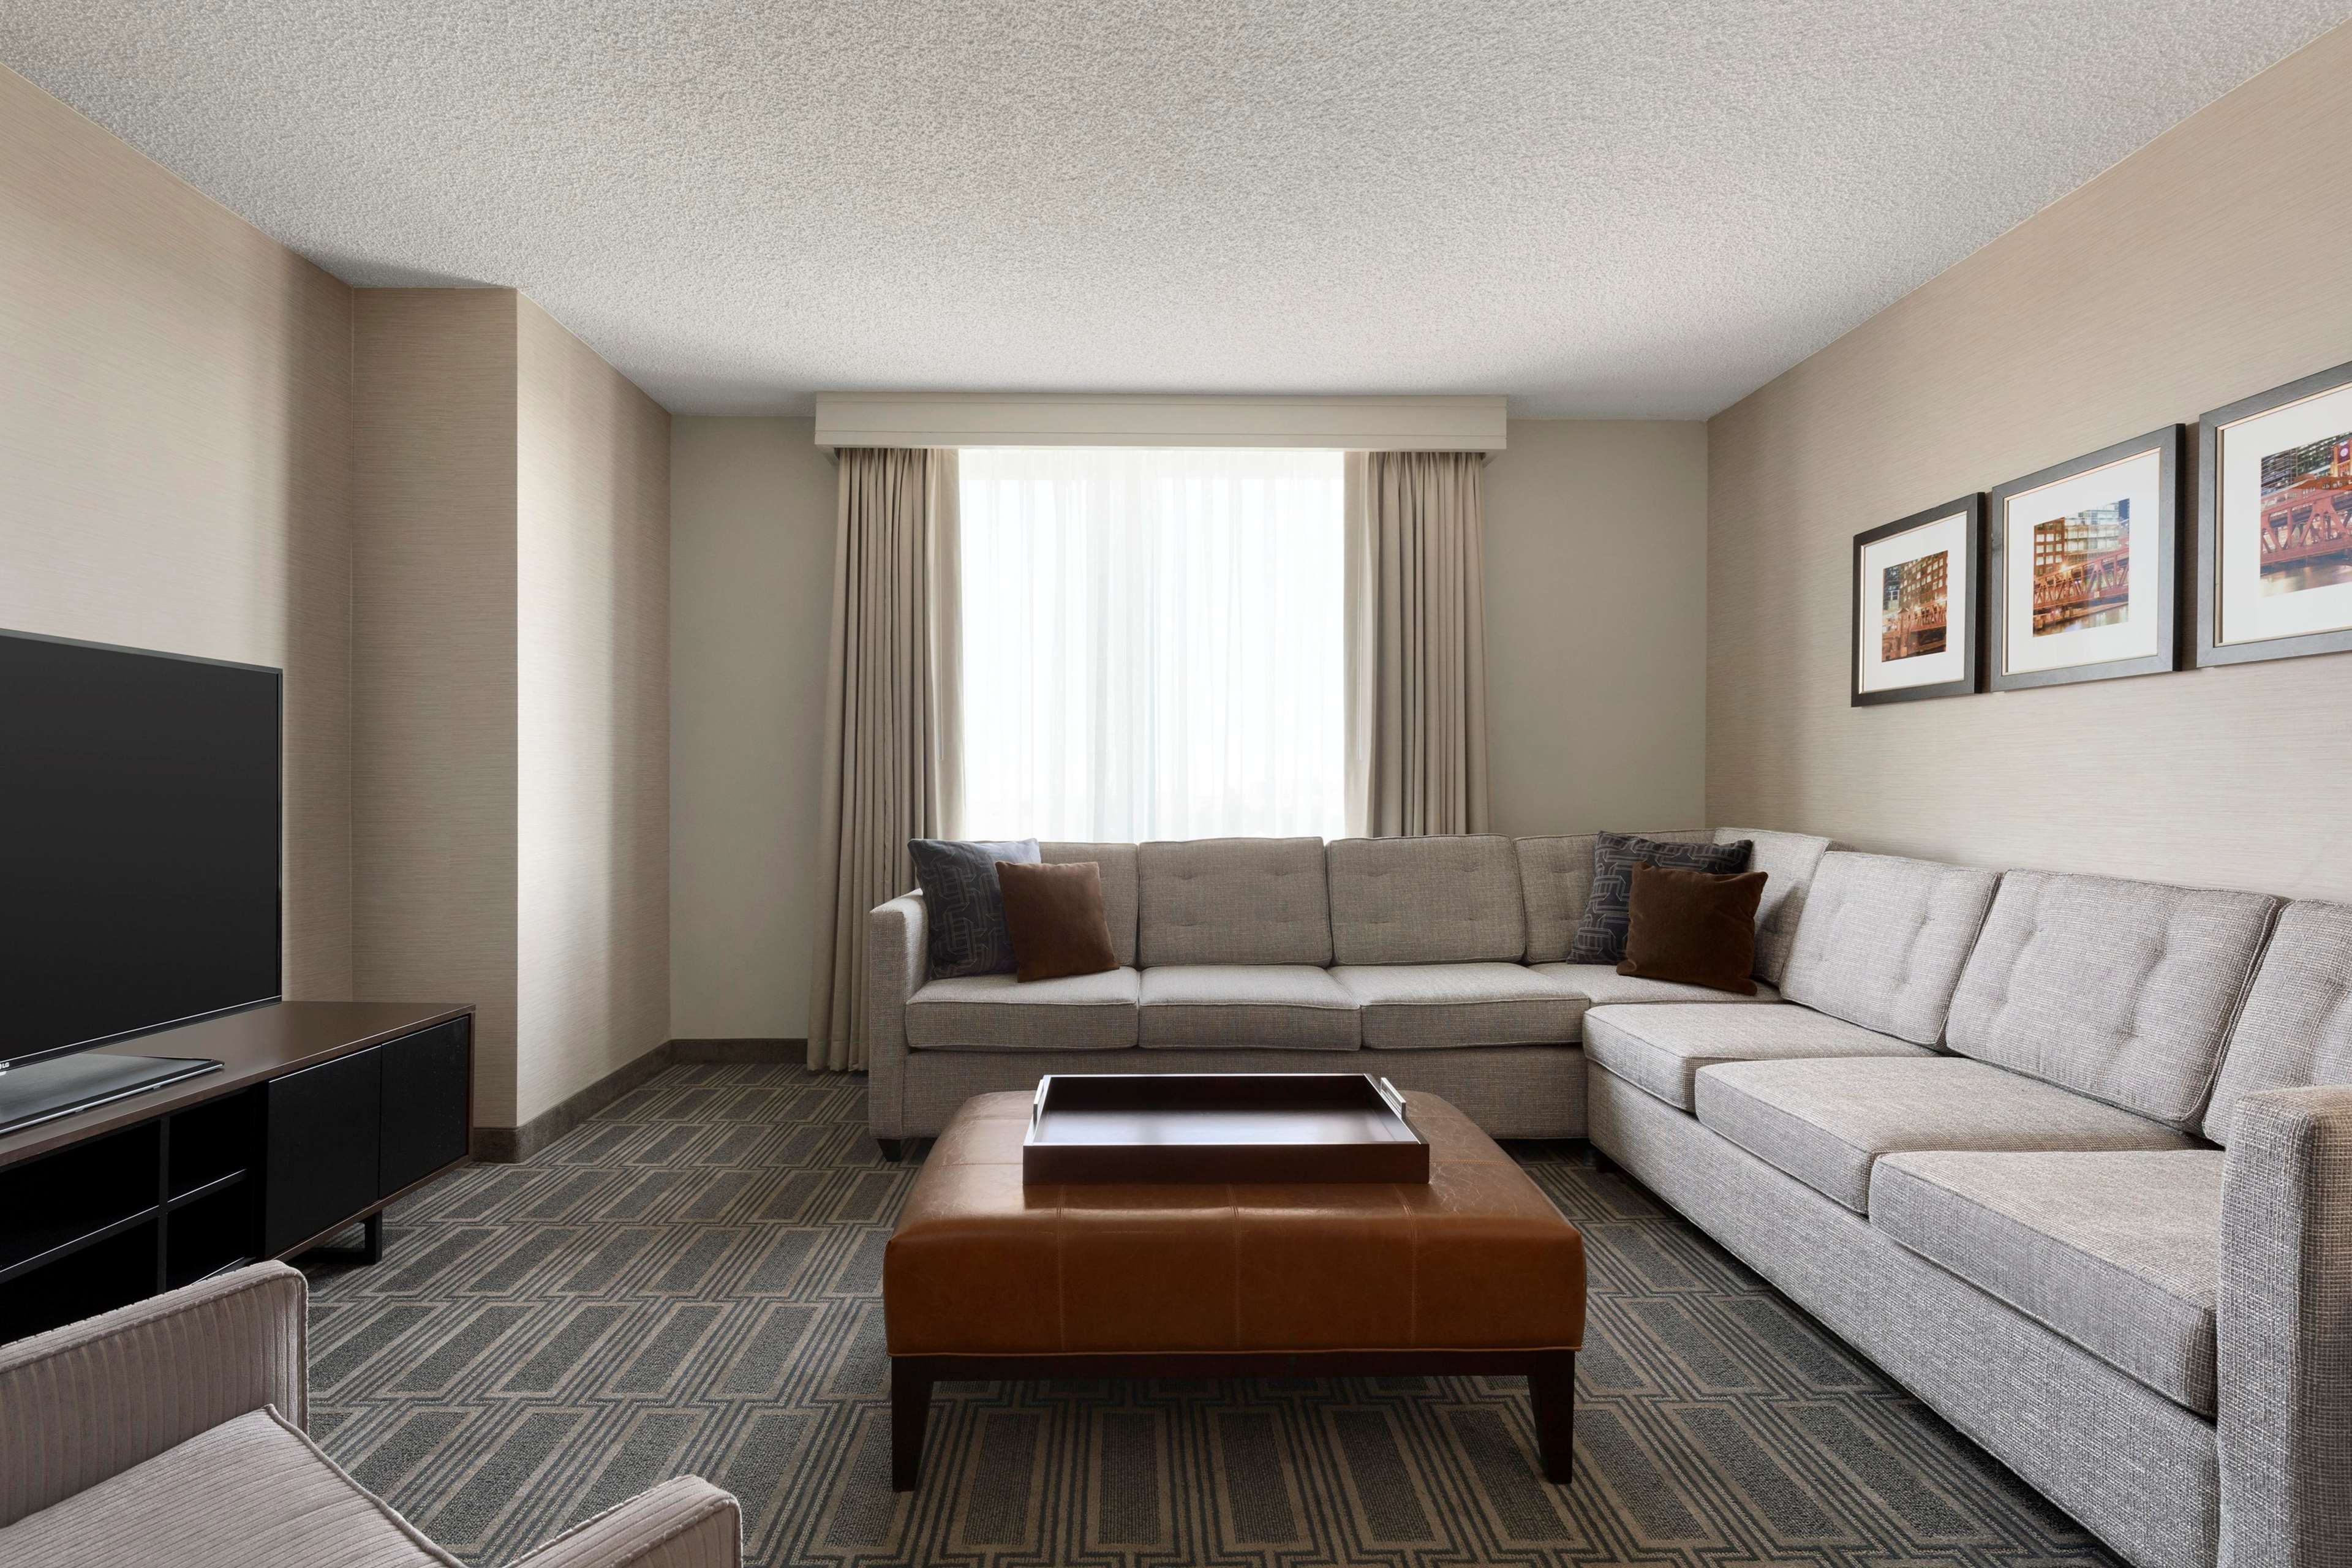 Embassy Suites by Hilton Chicago Lombard Oak Brook image 35